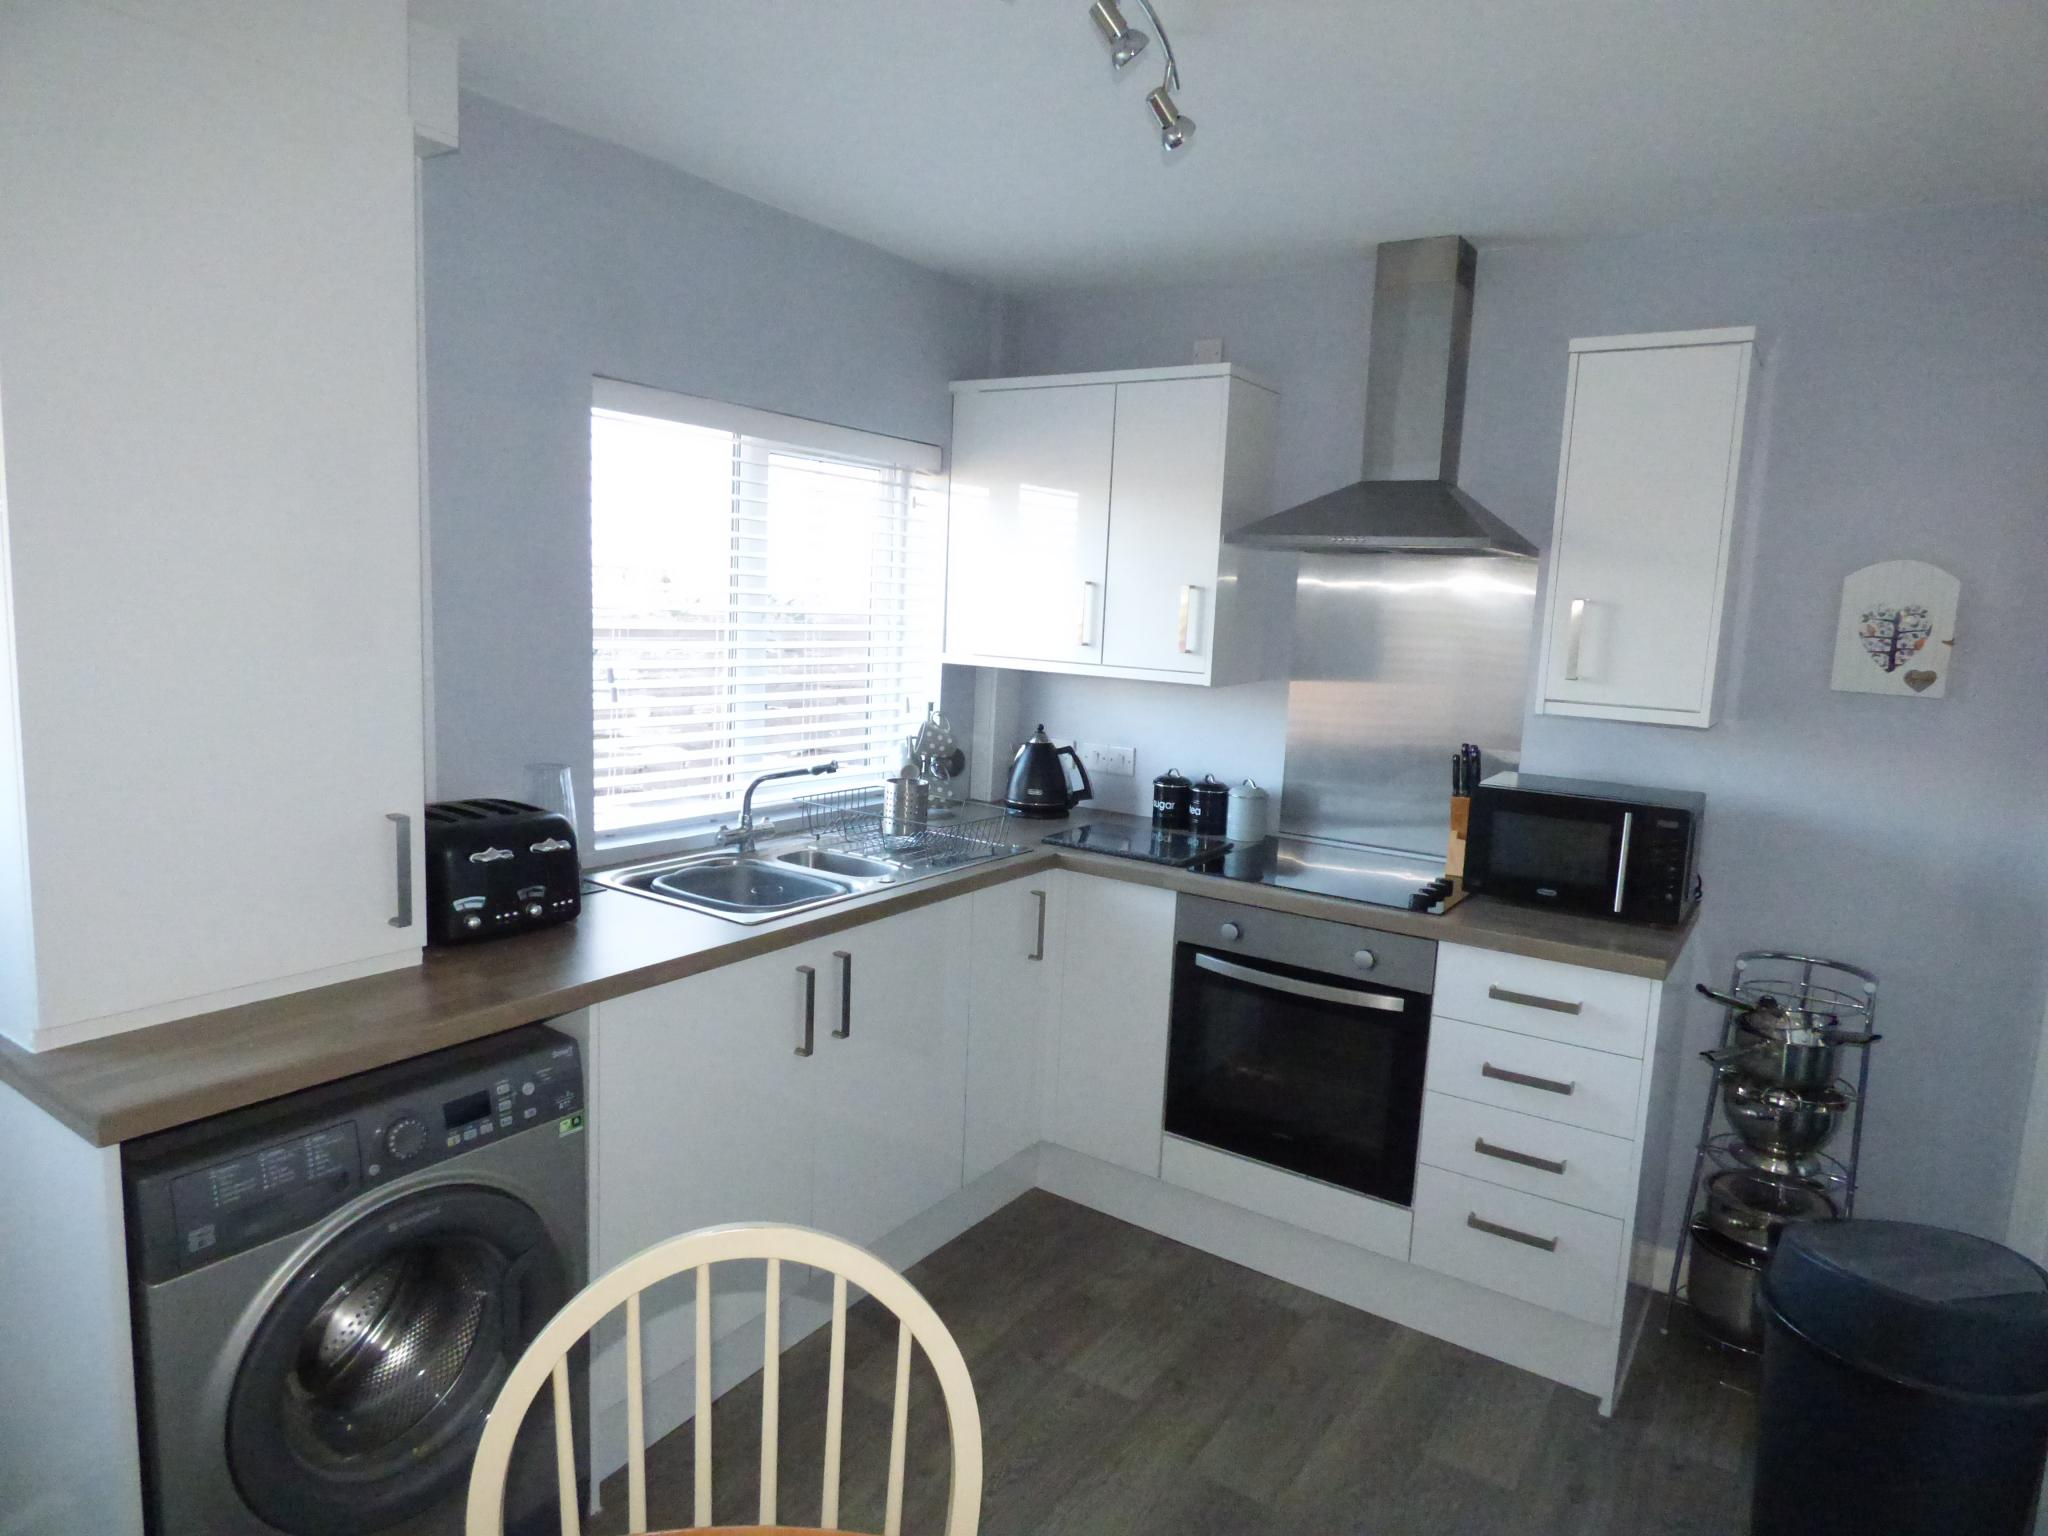 2 Bedroom Mews House For Sale in 47 Overton Crescent, Stockport, SK7